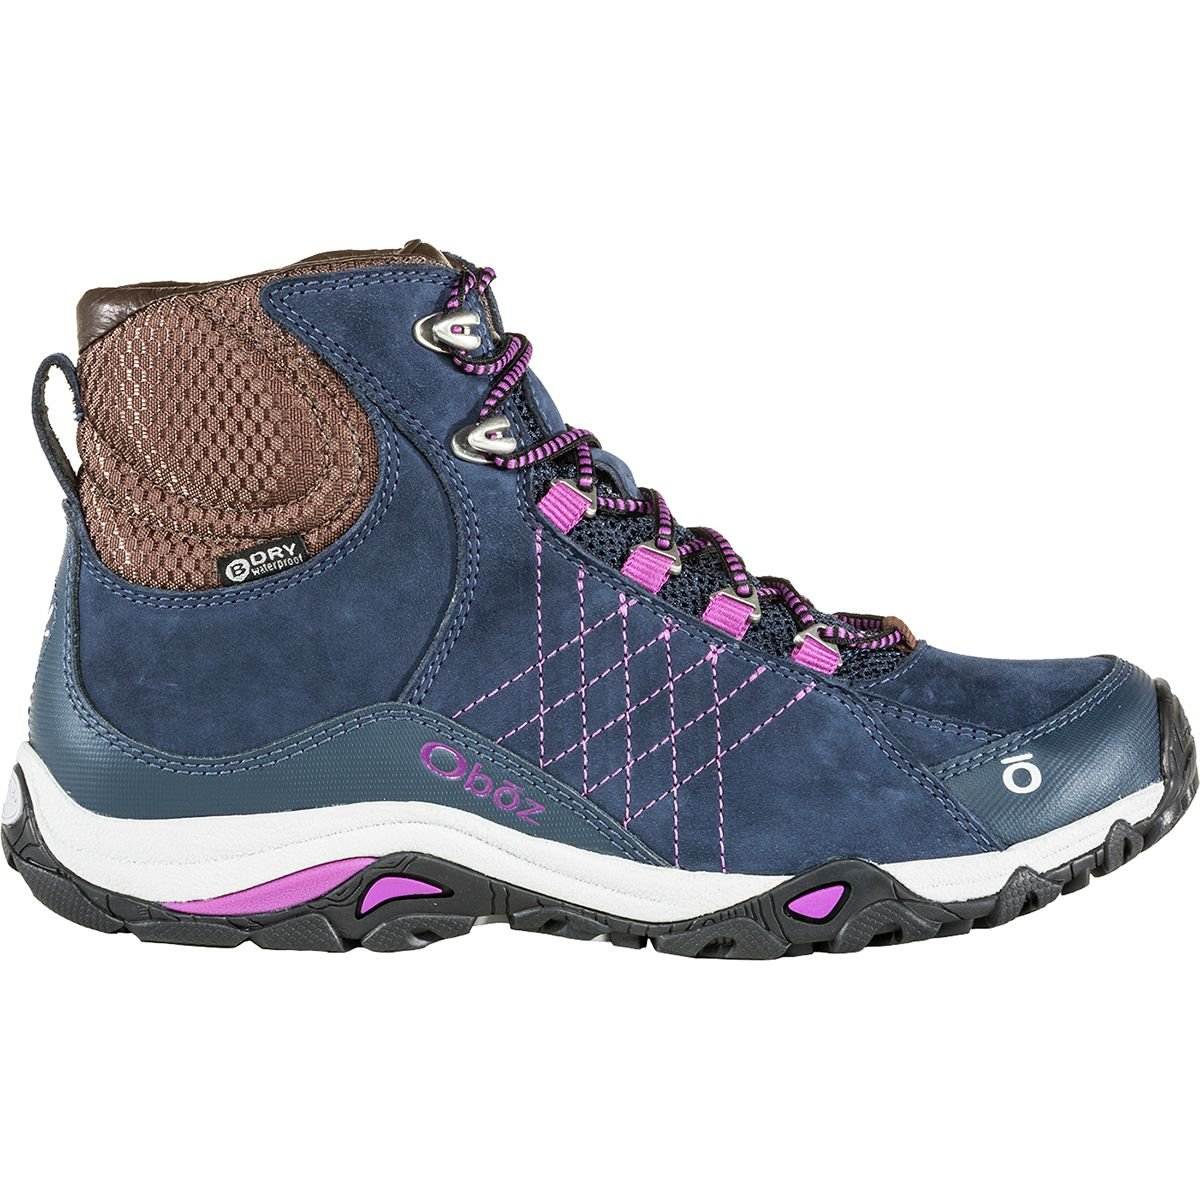 Oboz Women's Sapphire Mid Waterproof Boot B074N89FBG 7|Huckleberry